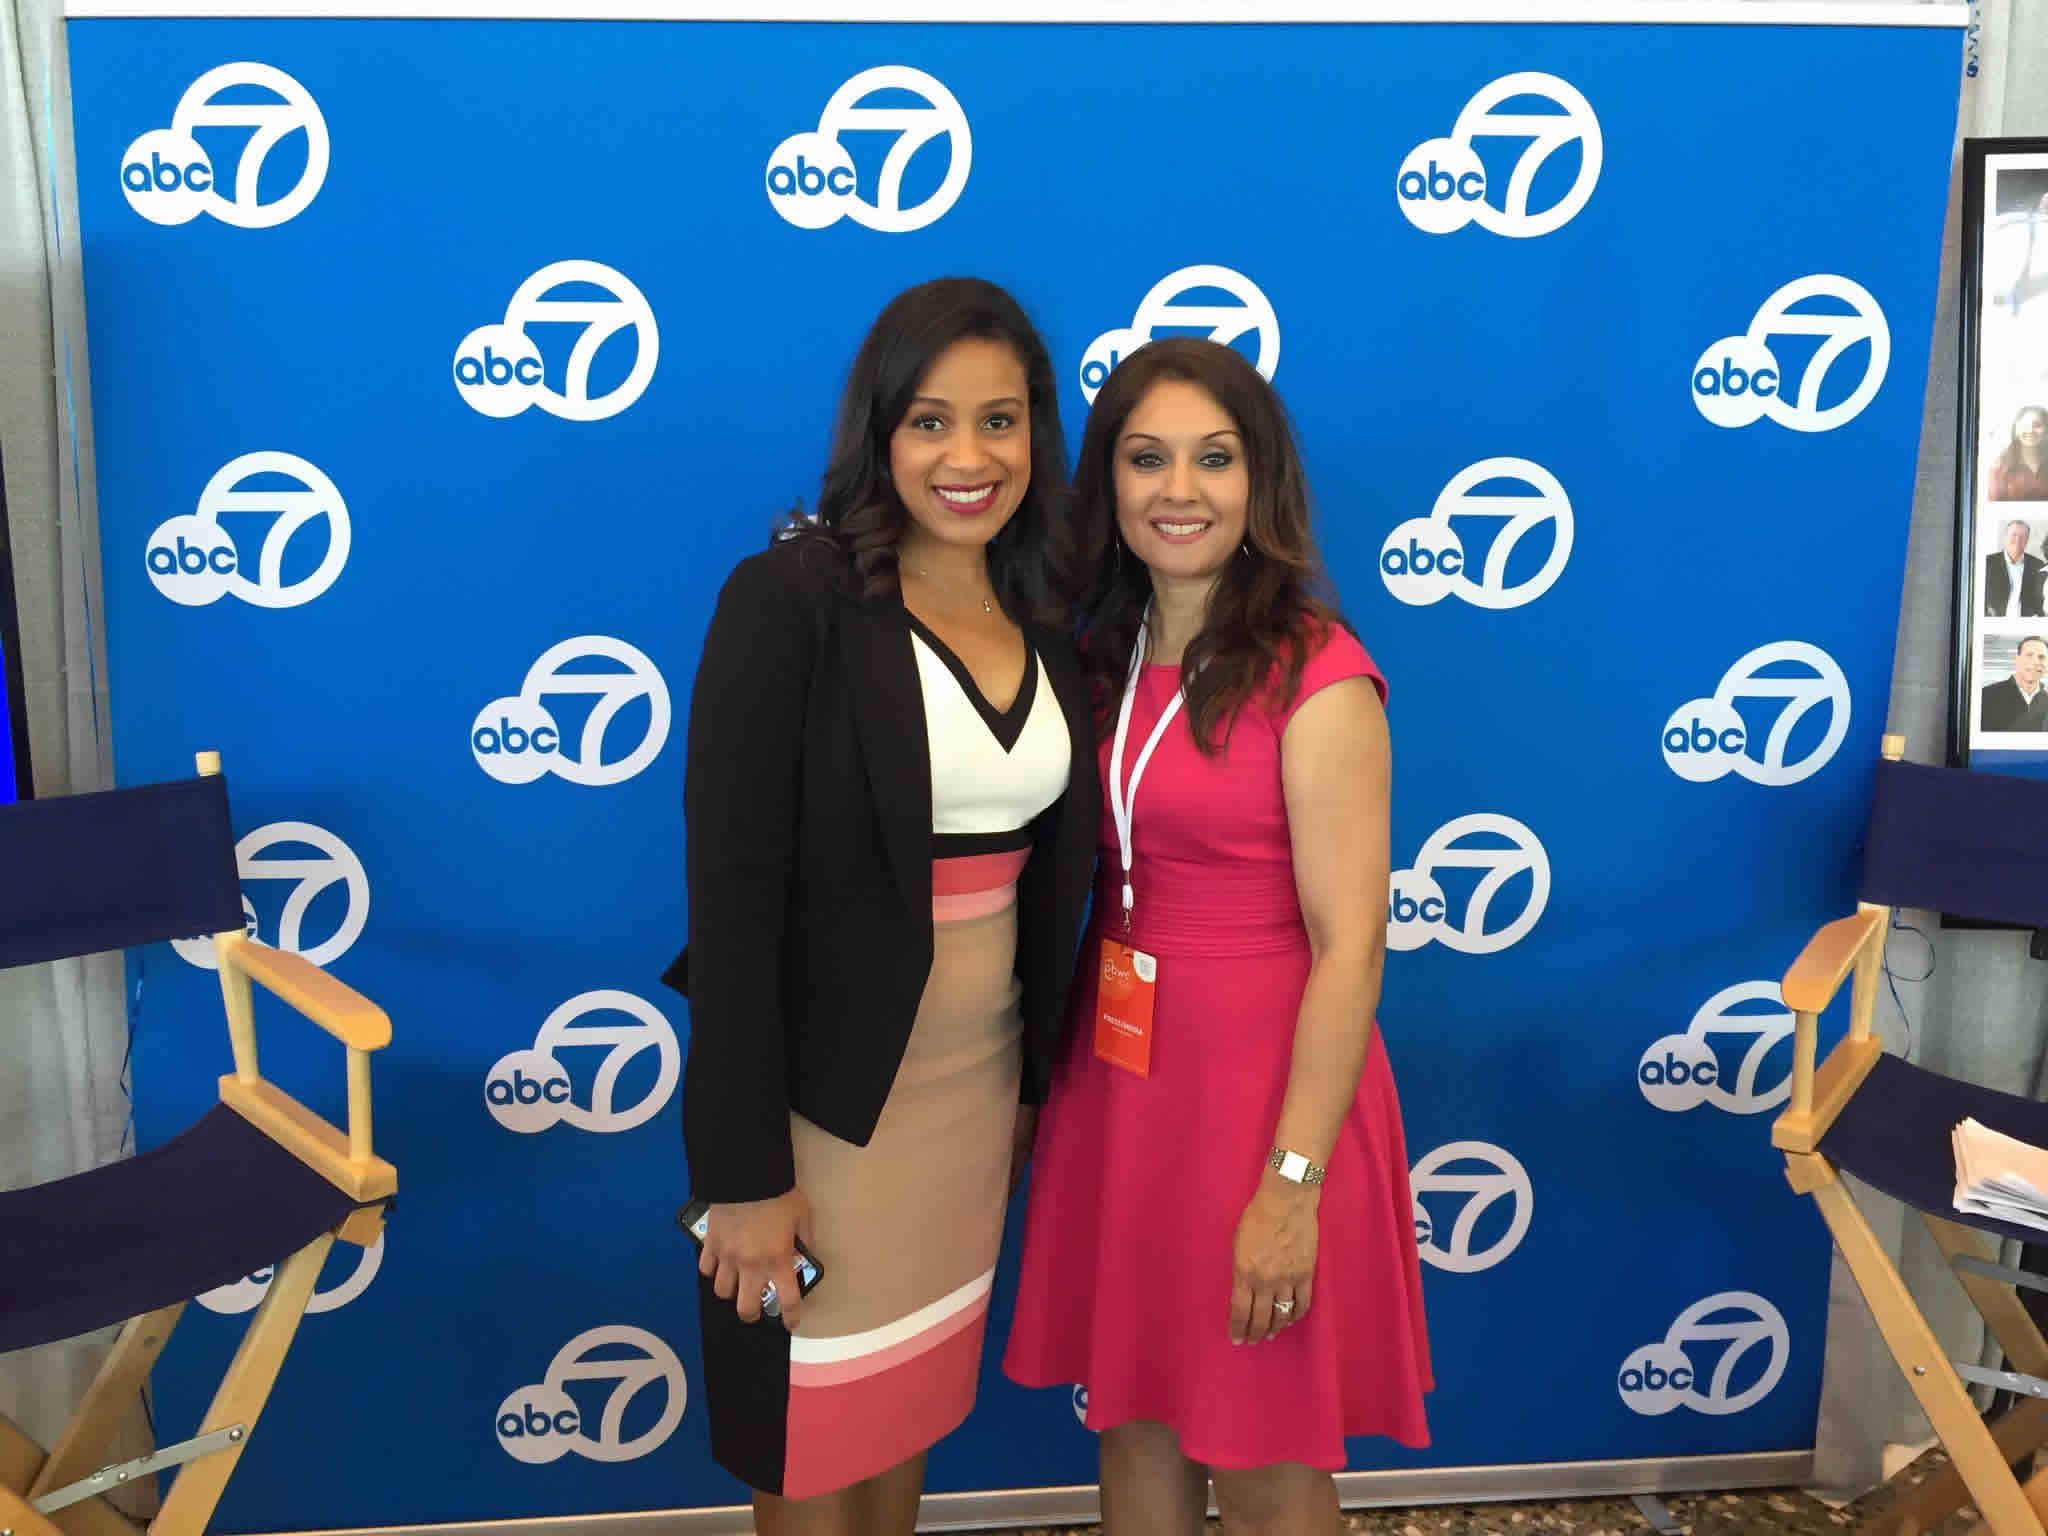 <div class='meta'><div class='origin-logo' data-origin='none'></div><span class='caption-text' data-credit='KGO-TV'>ABC7's Ama Dates and Sandhya Patel at the Professional BusinessWomen of California Conference in San Francisco on March, 28, 2017.</span></div>